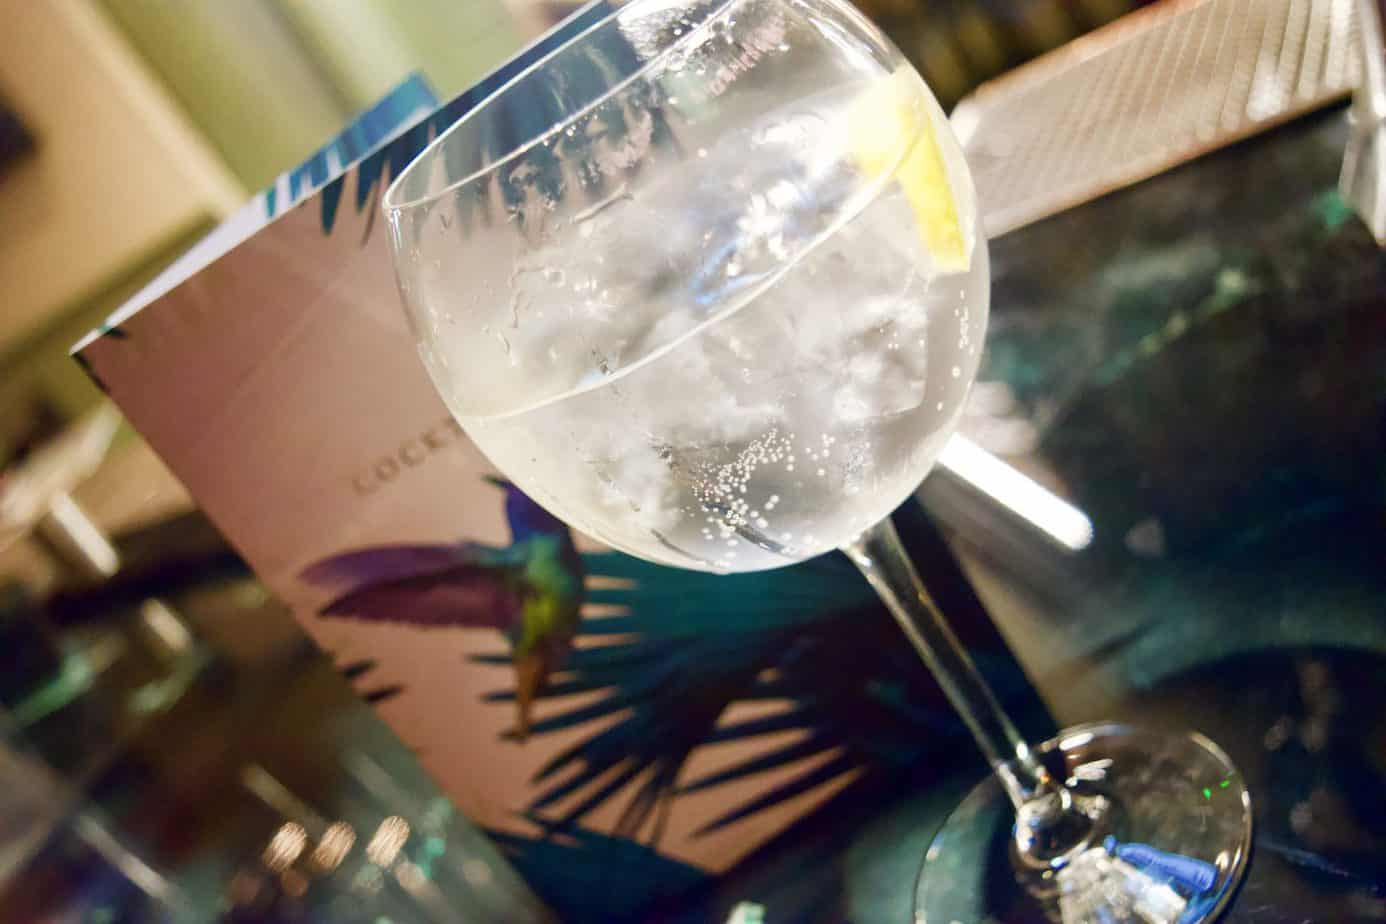 A close up of my gin and tonic at the bar in the green house pub in sutton coalfield